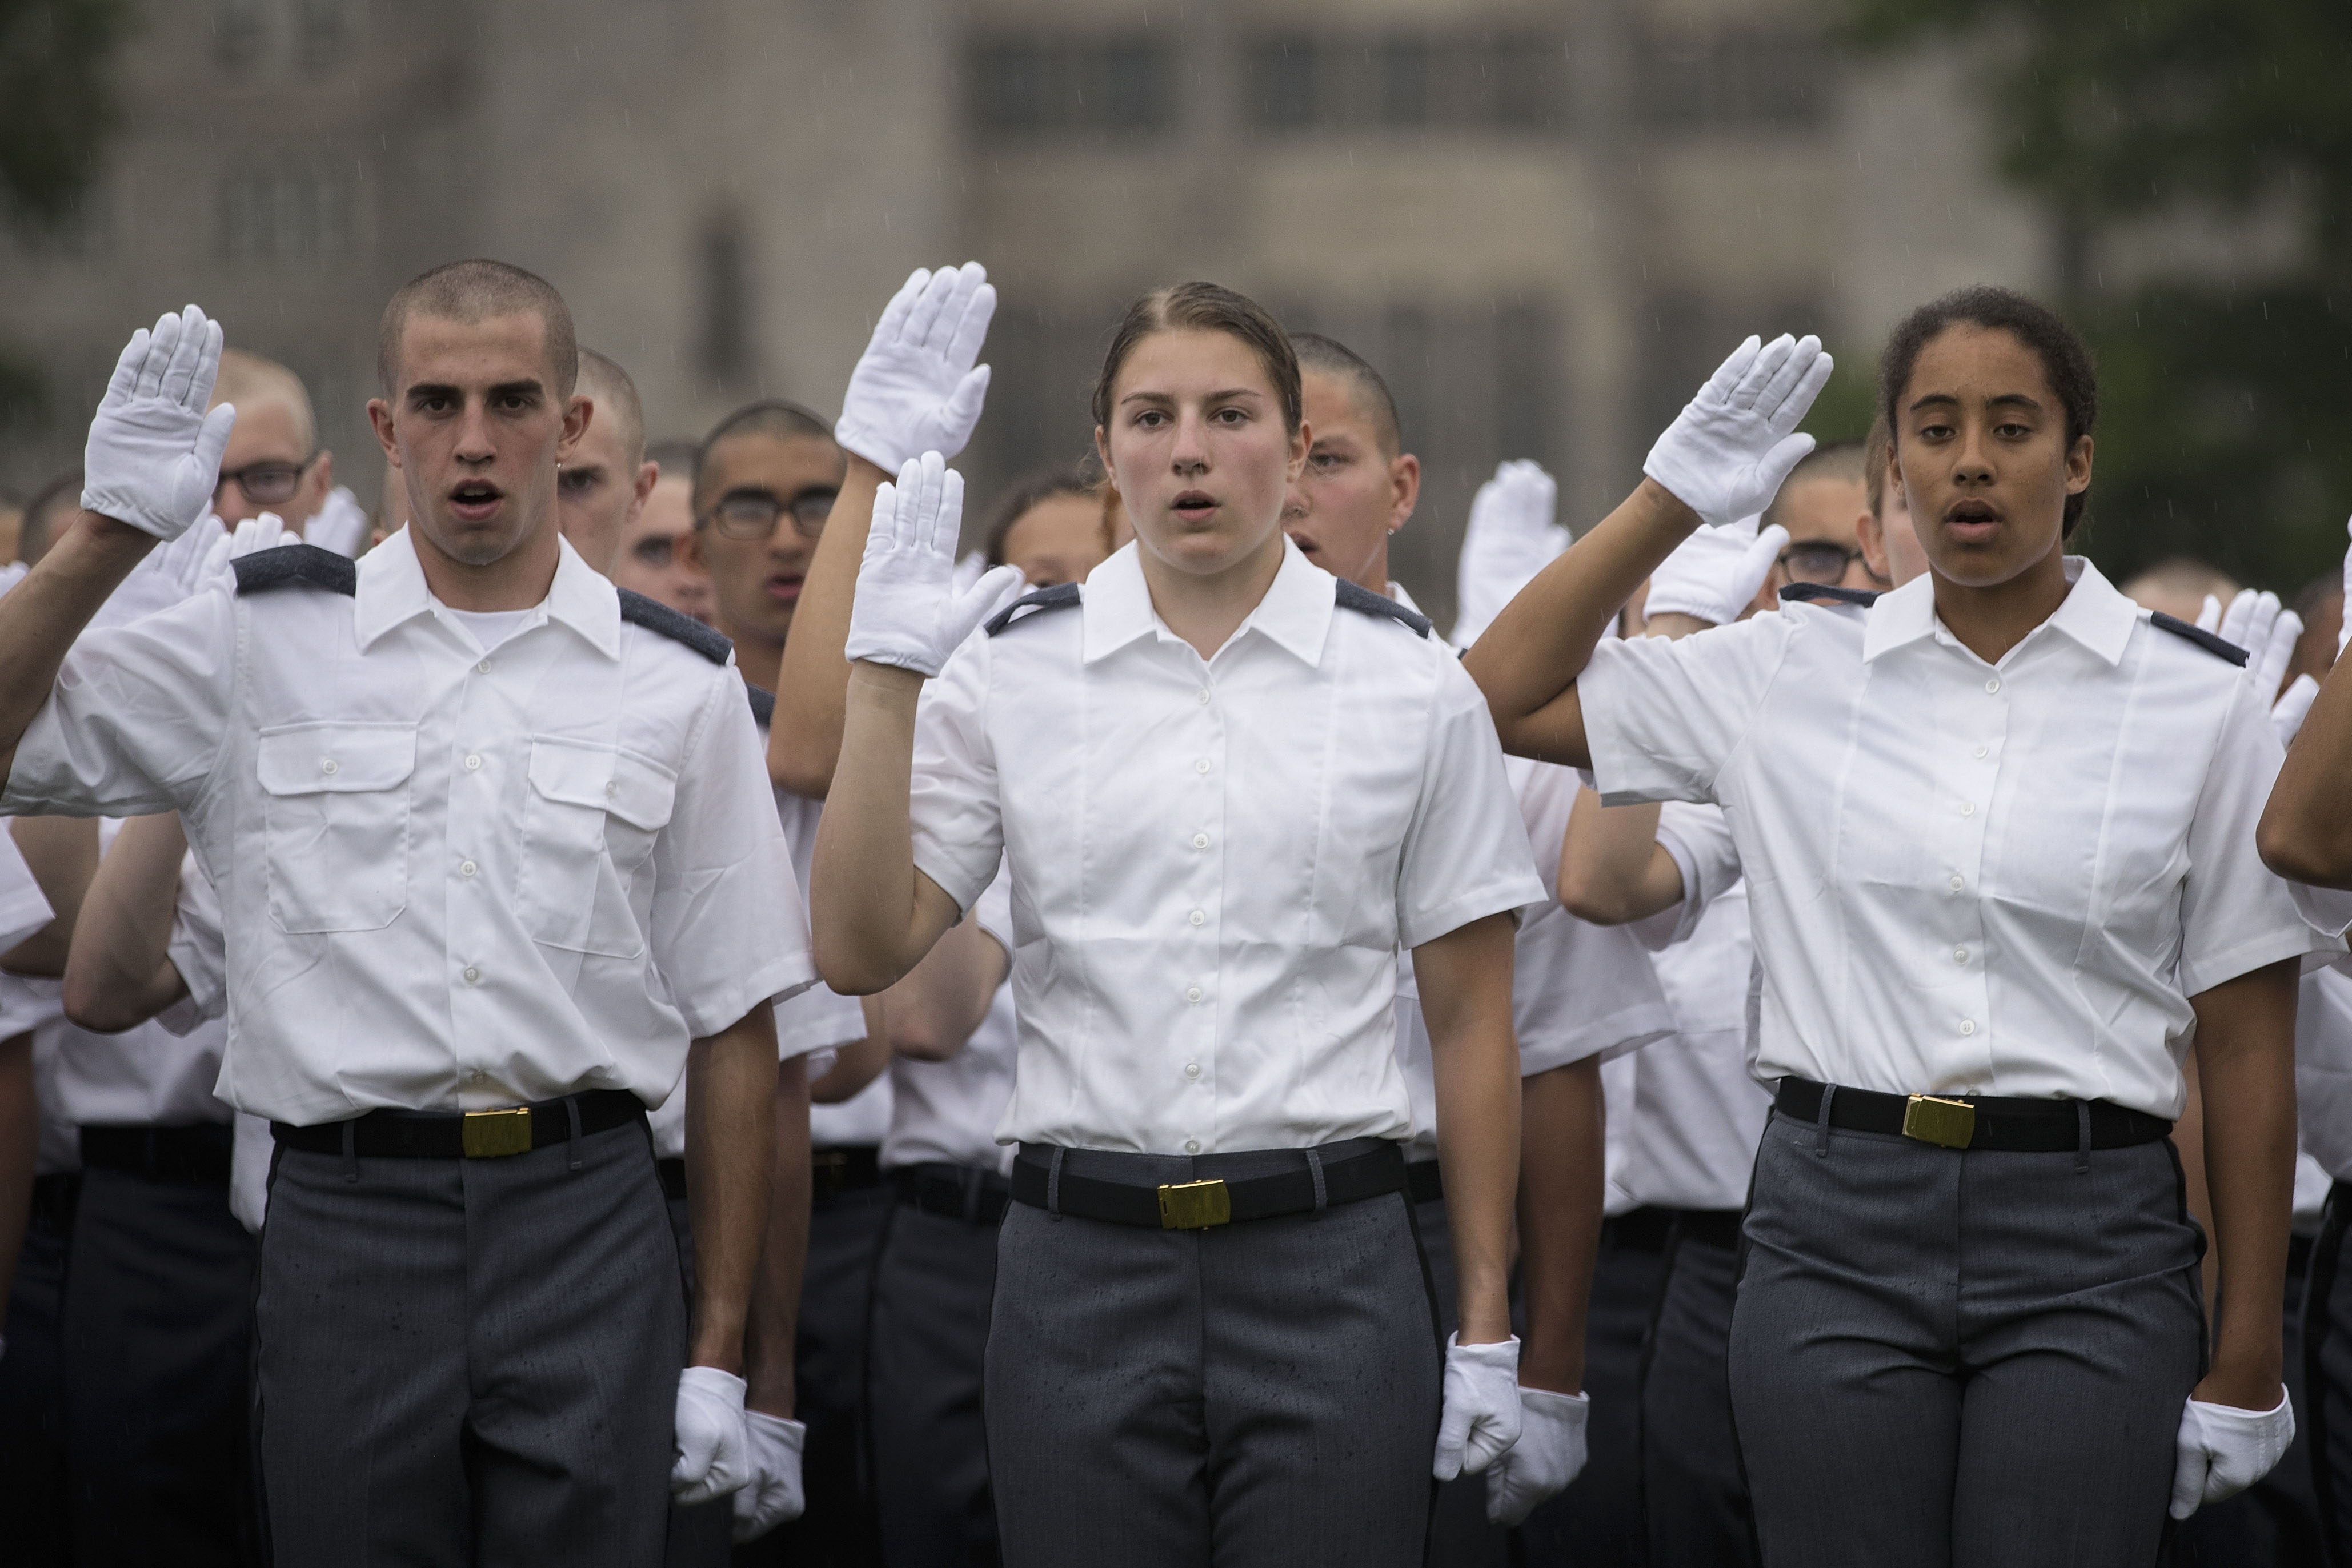 WEST POINT, NY - JUNE 27: New cadets take the Oath of Allegiance during Reception Day at the United States Military Academy at West Point, June 27, 2016 in West Point, New York. (Drew Angerer/Getty Images)